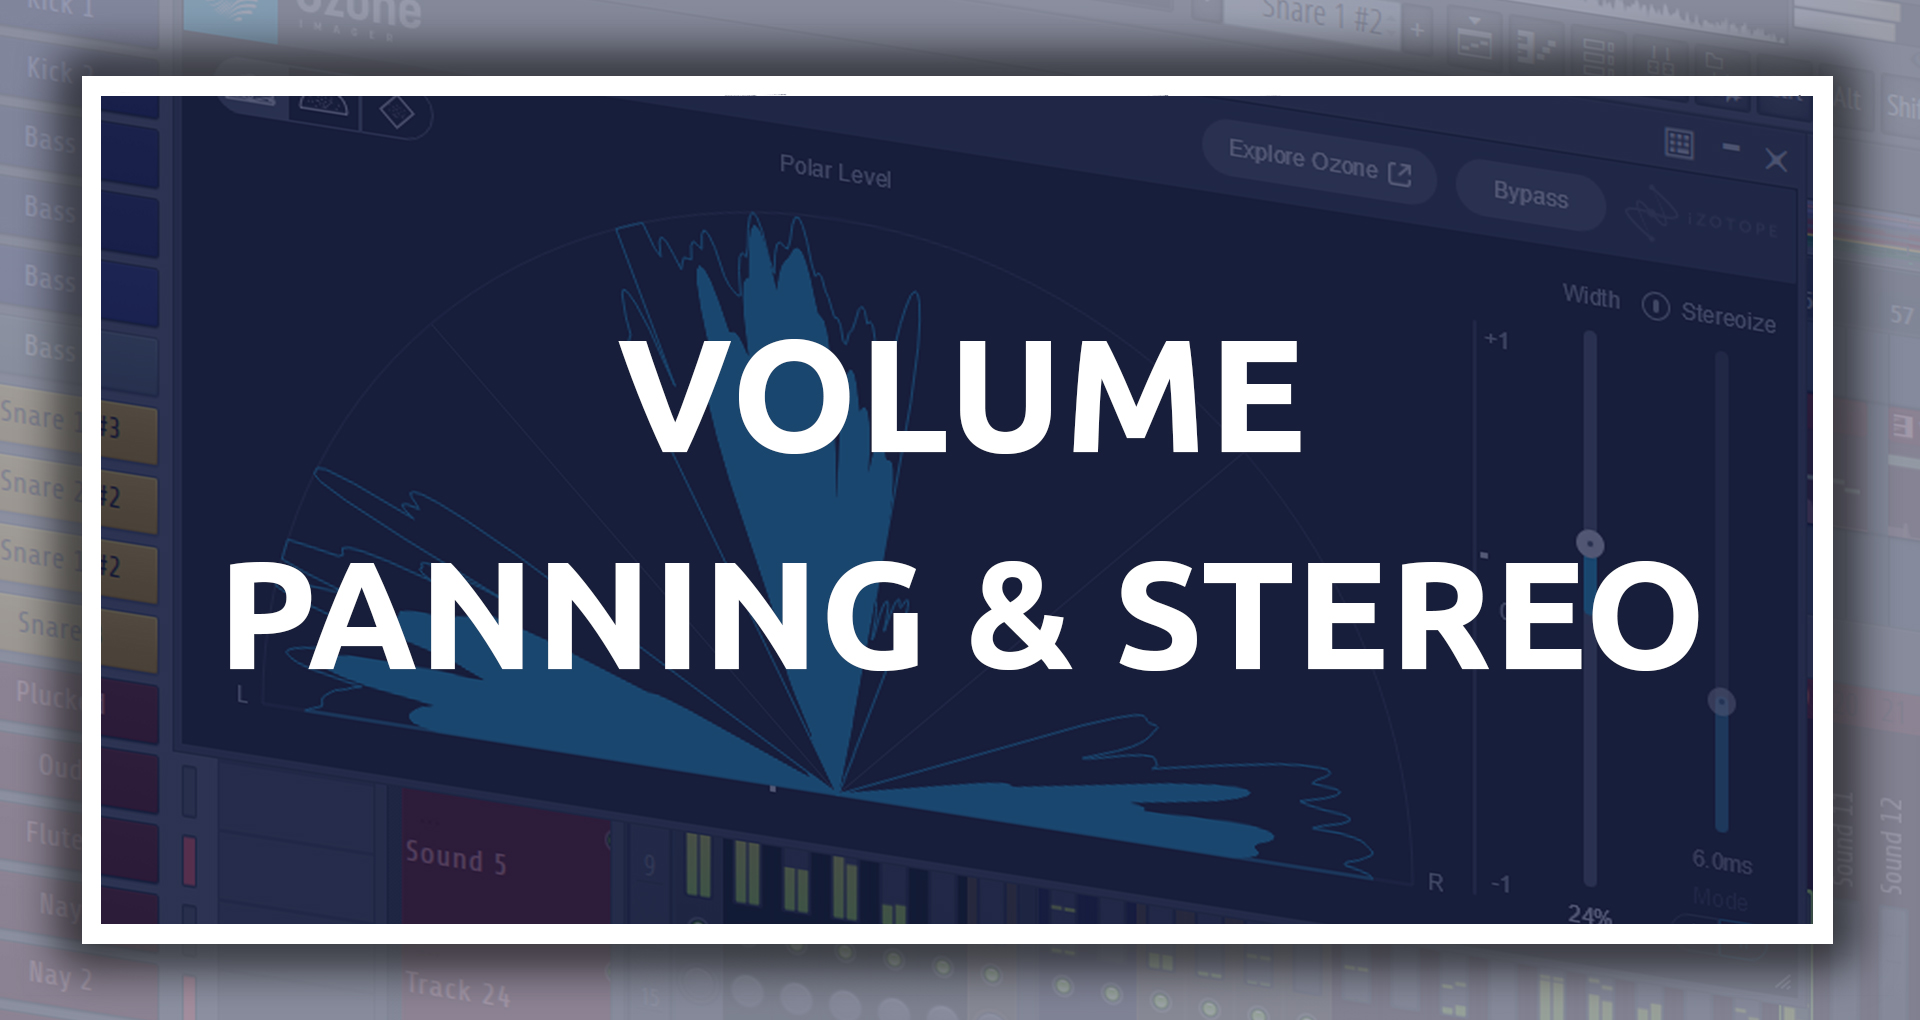 Voume Panning & Stereo